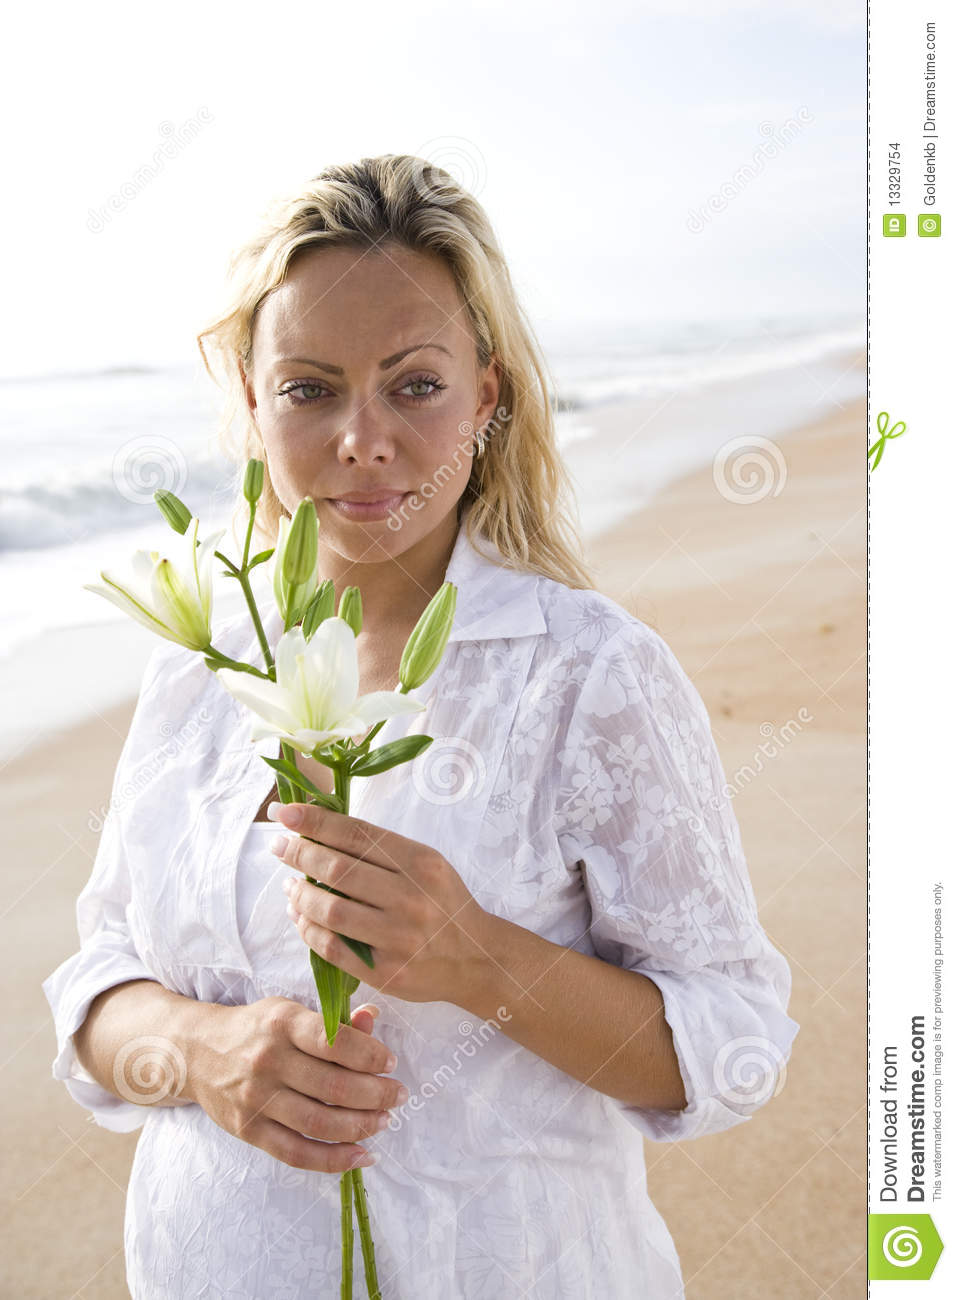 Pregnant woman in white on beach holding flower